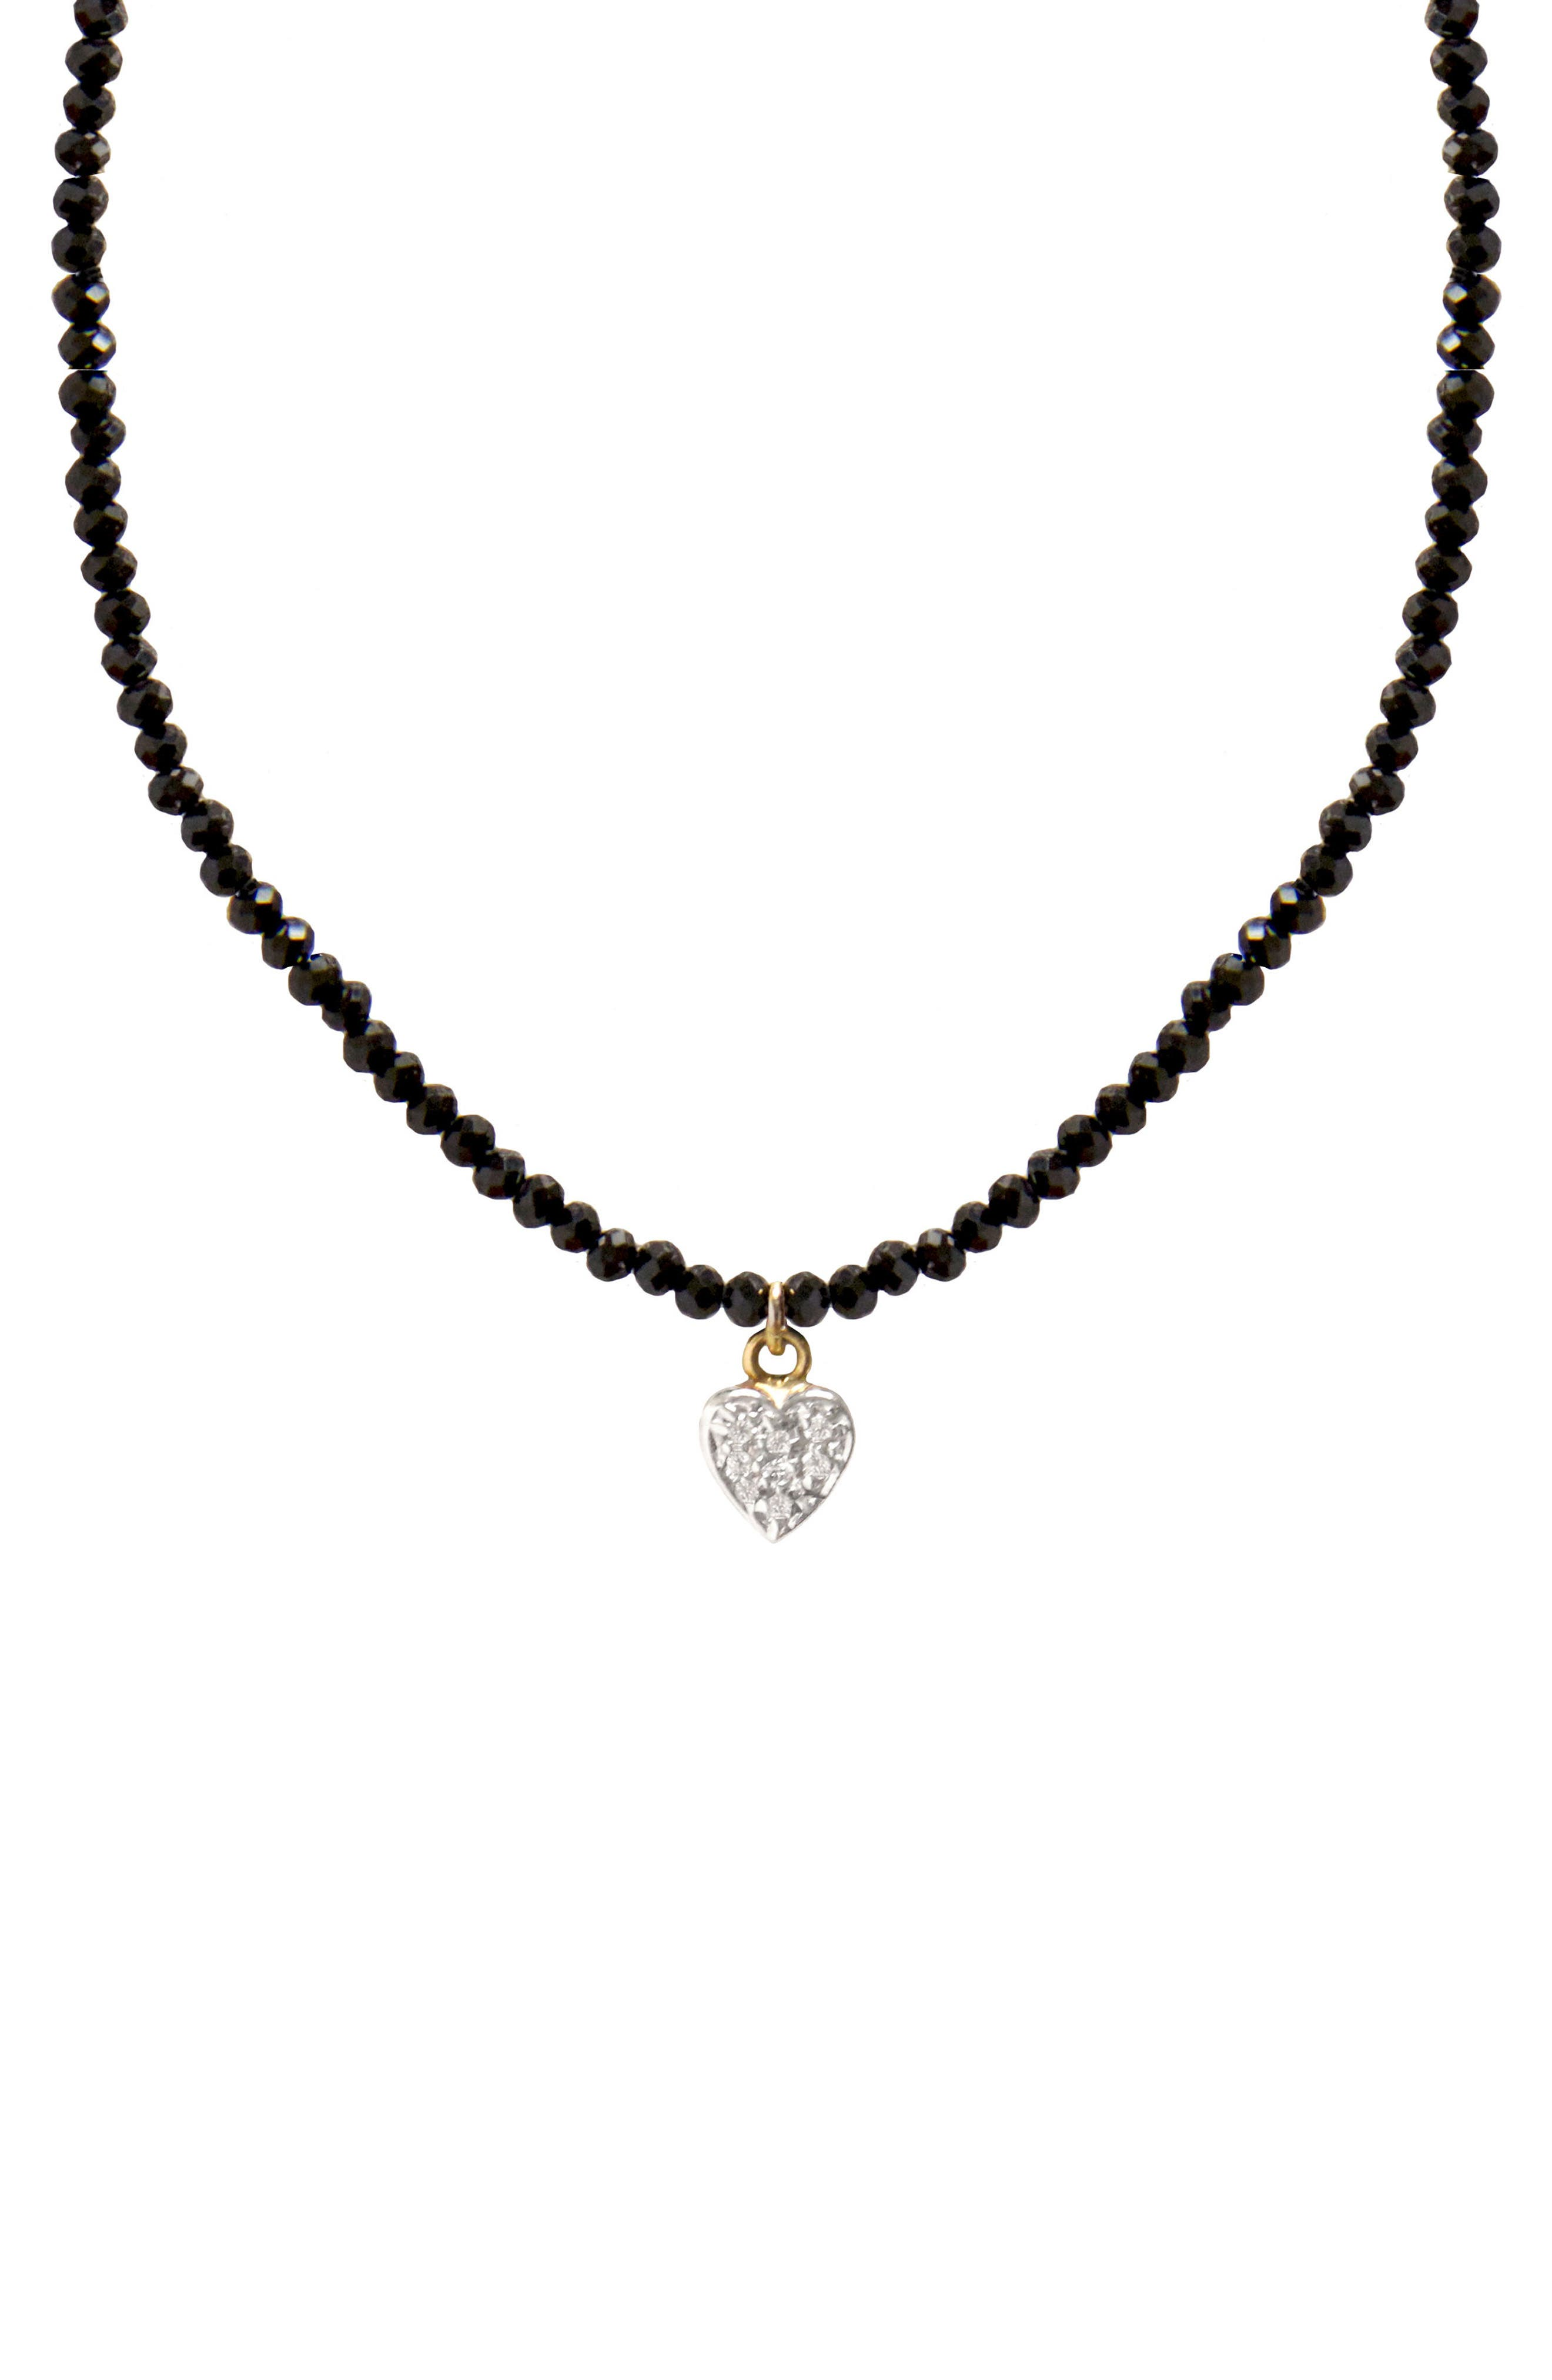 Jane Basch Diamond Heart Pendant Necklace,                             Main thumbnail 1, color,                             BLACK ONYX